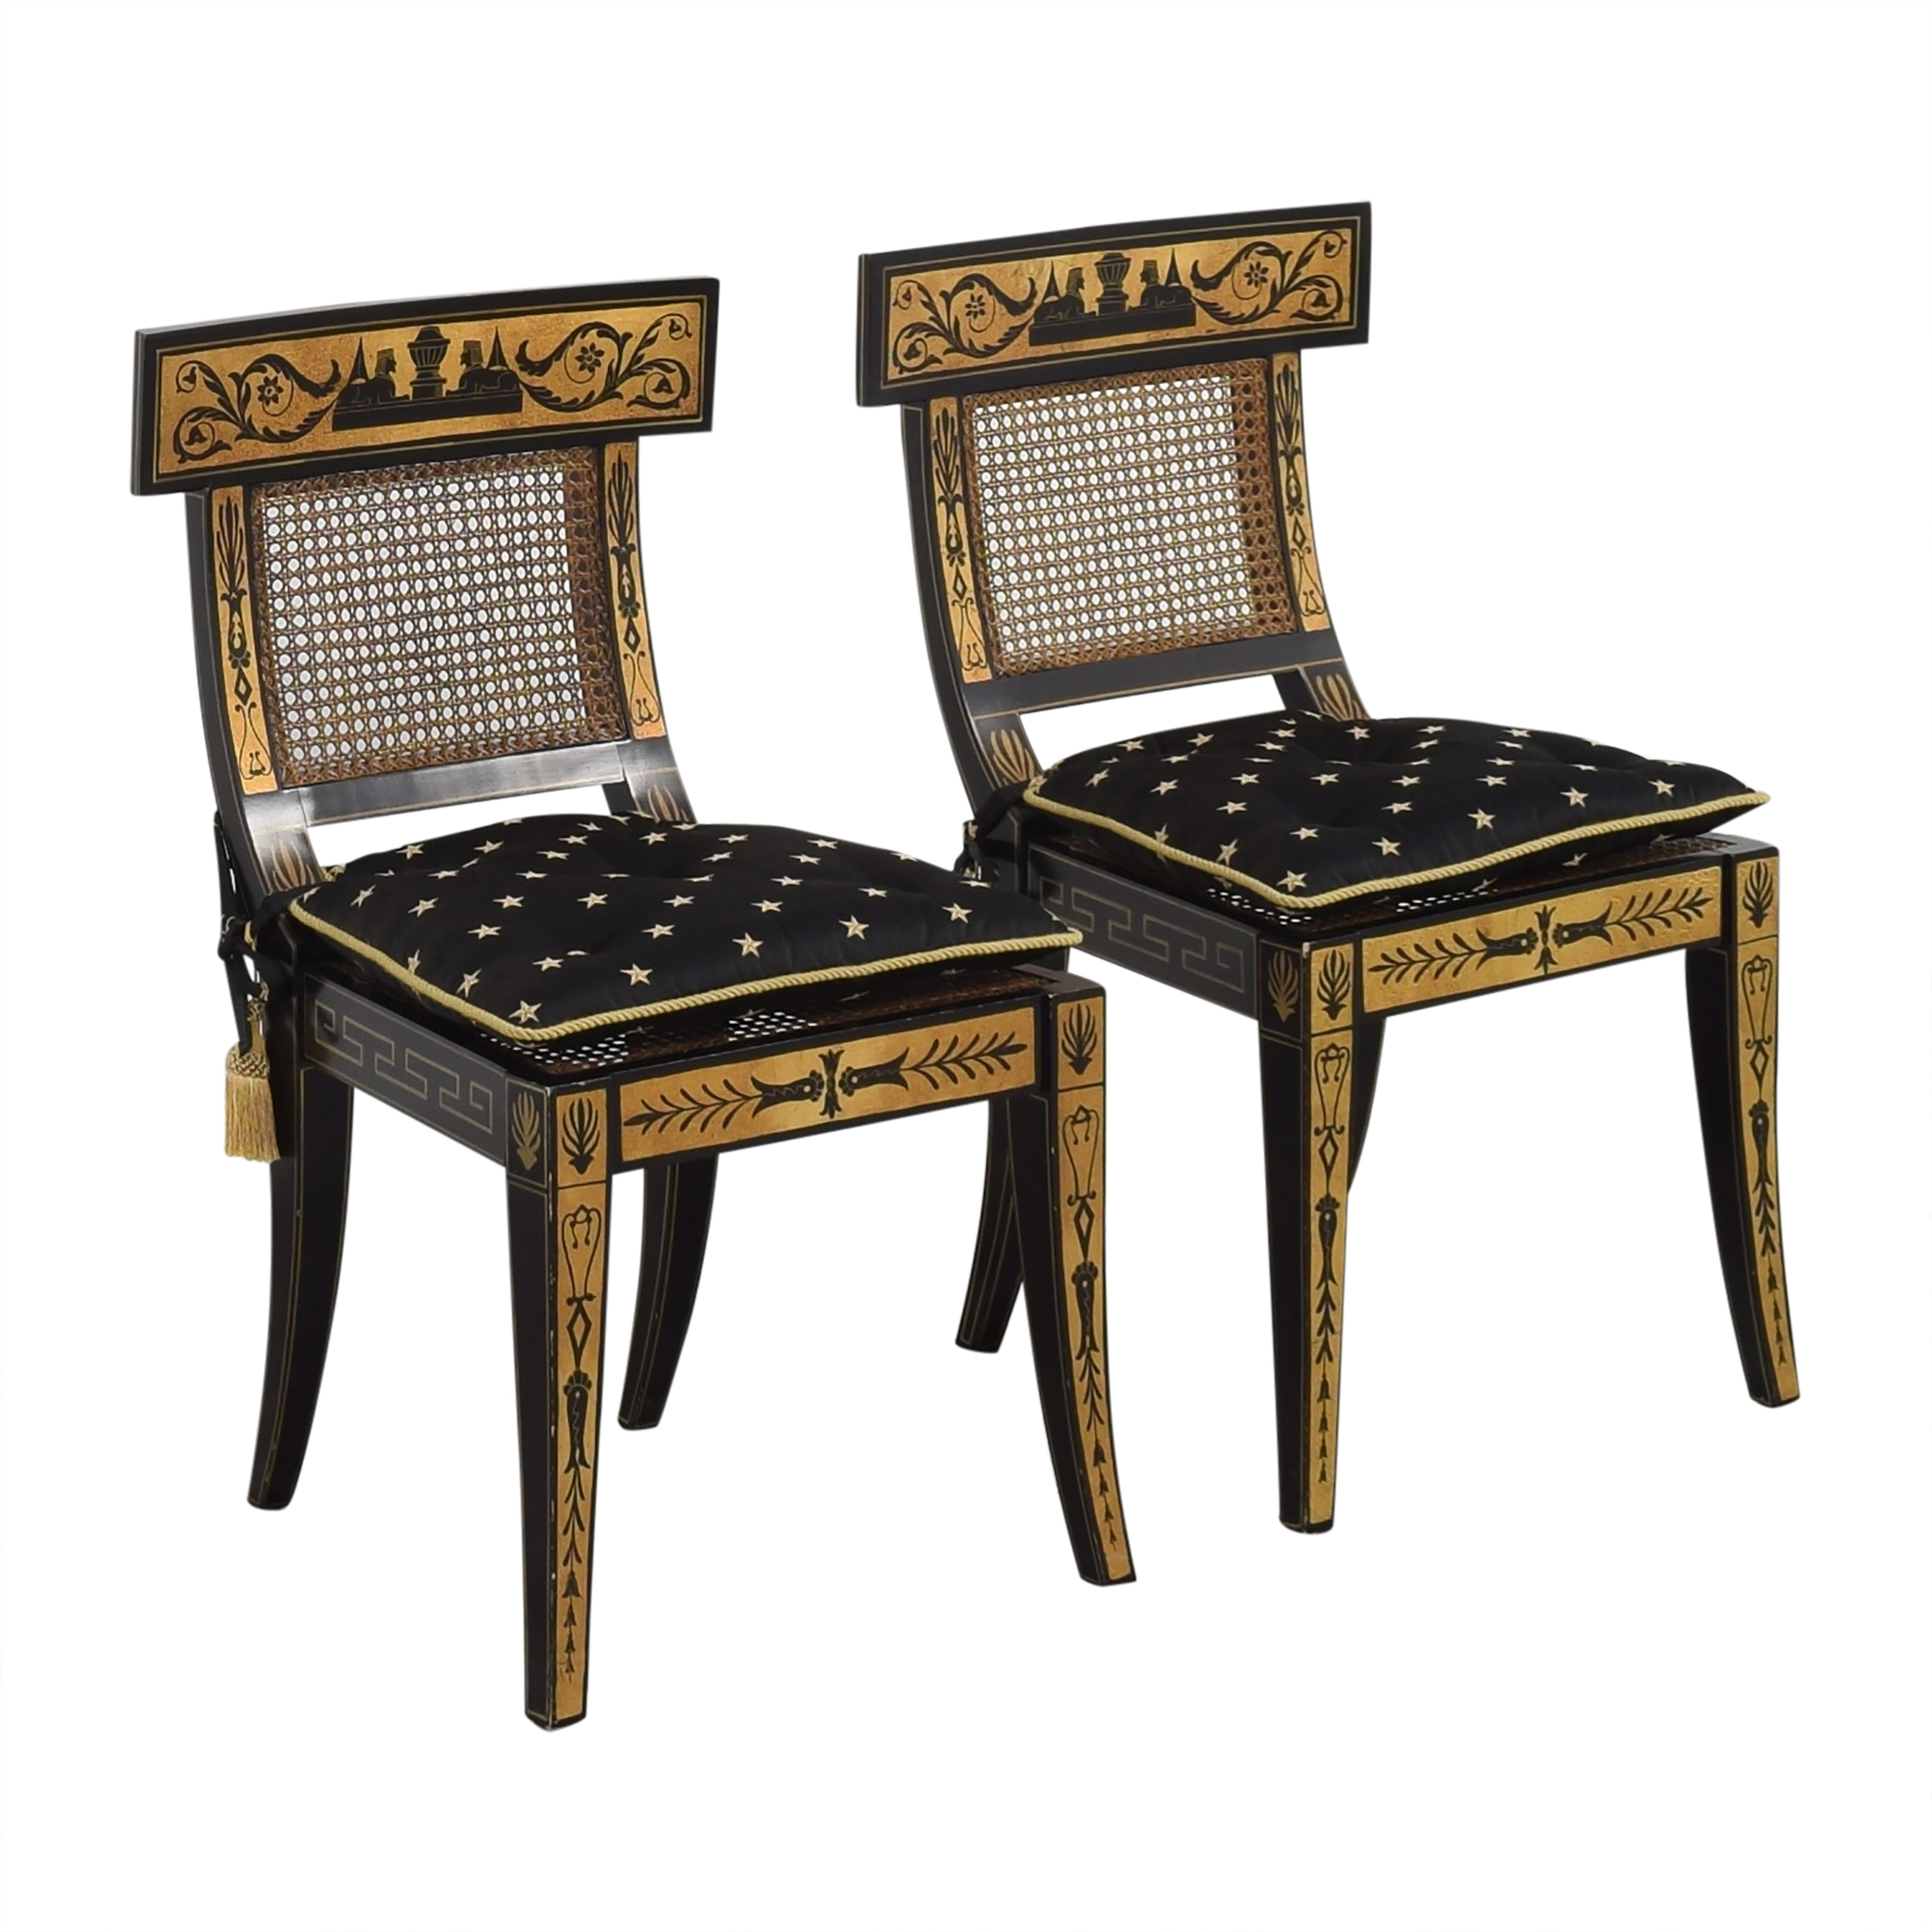 Maitland-Smith Maitland-Smith Decorative Dining Chairs with Cushions for sale